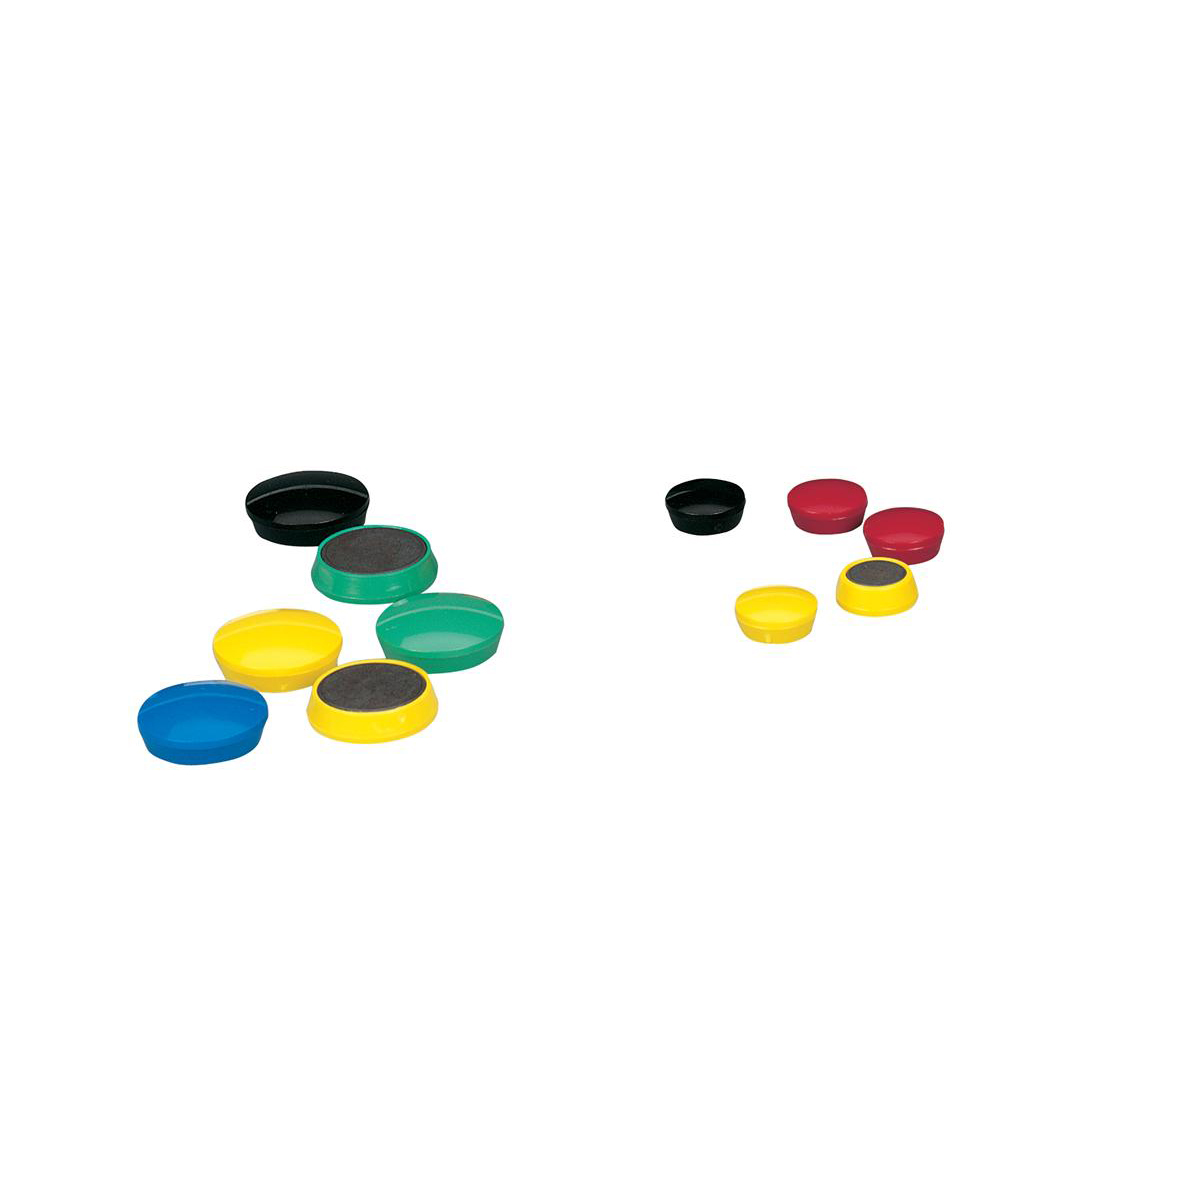 5 Star Office Round Plastic Covered Magnets 24mm Assorted